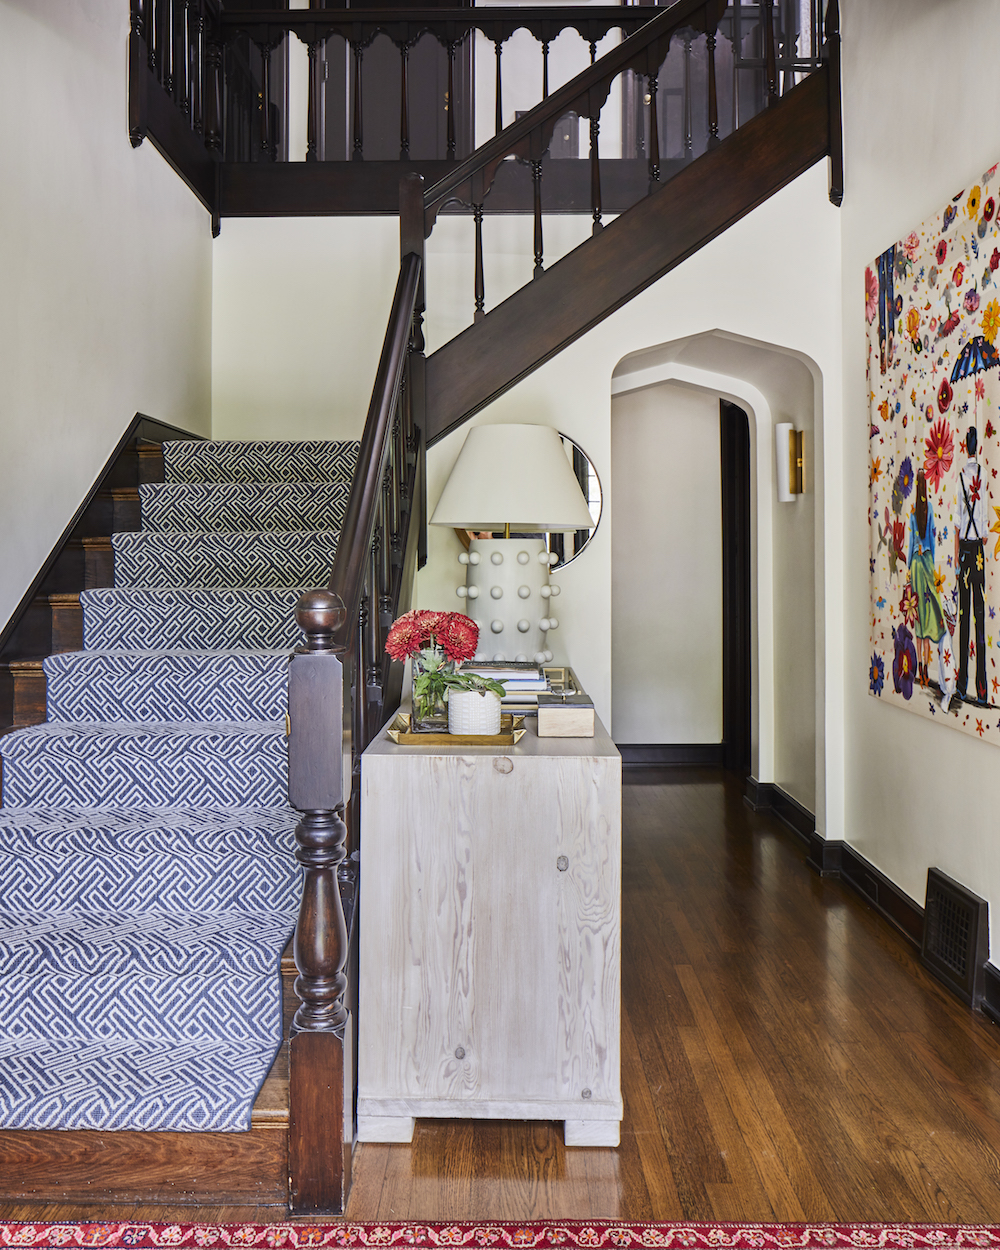 Explore A Warm, Homely And Colourful Family Home in Tulsa